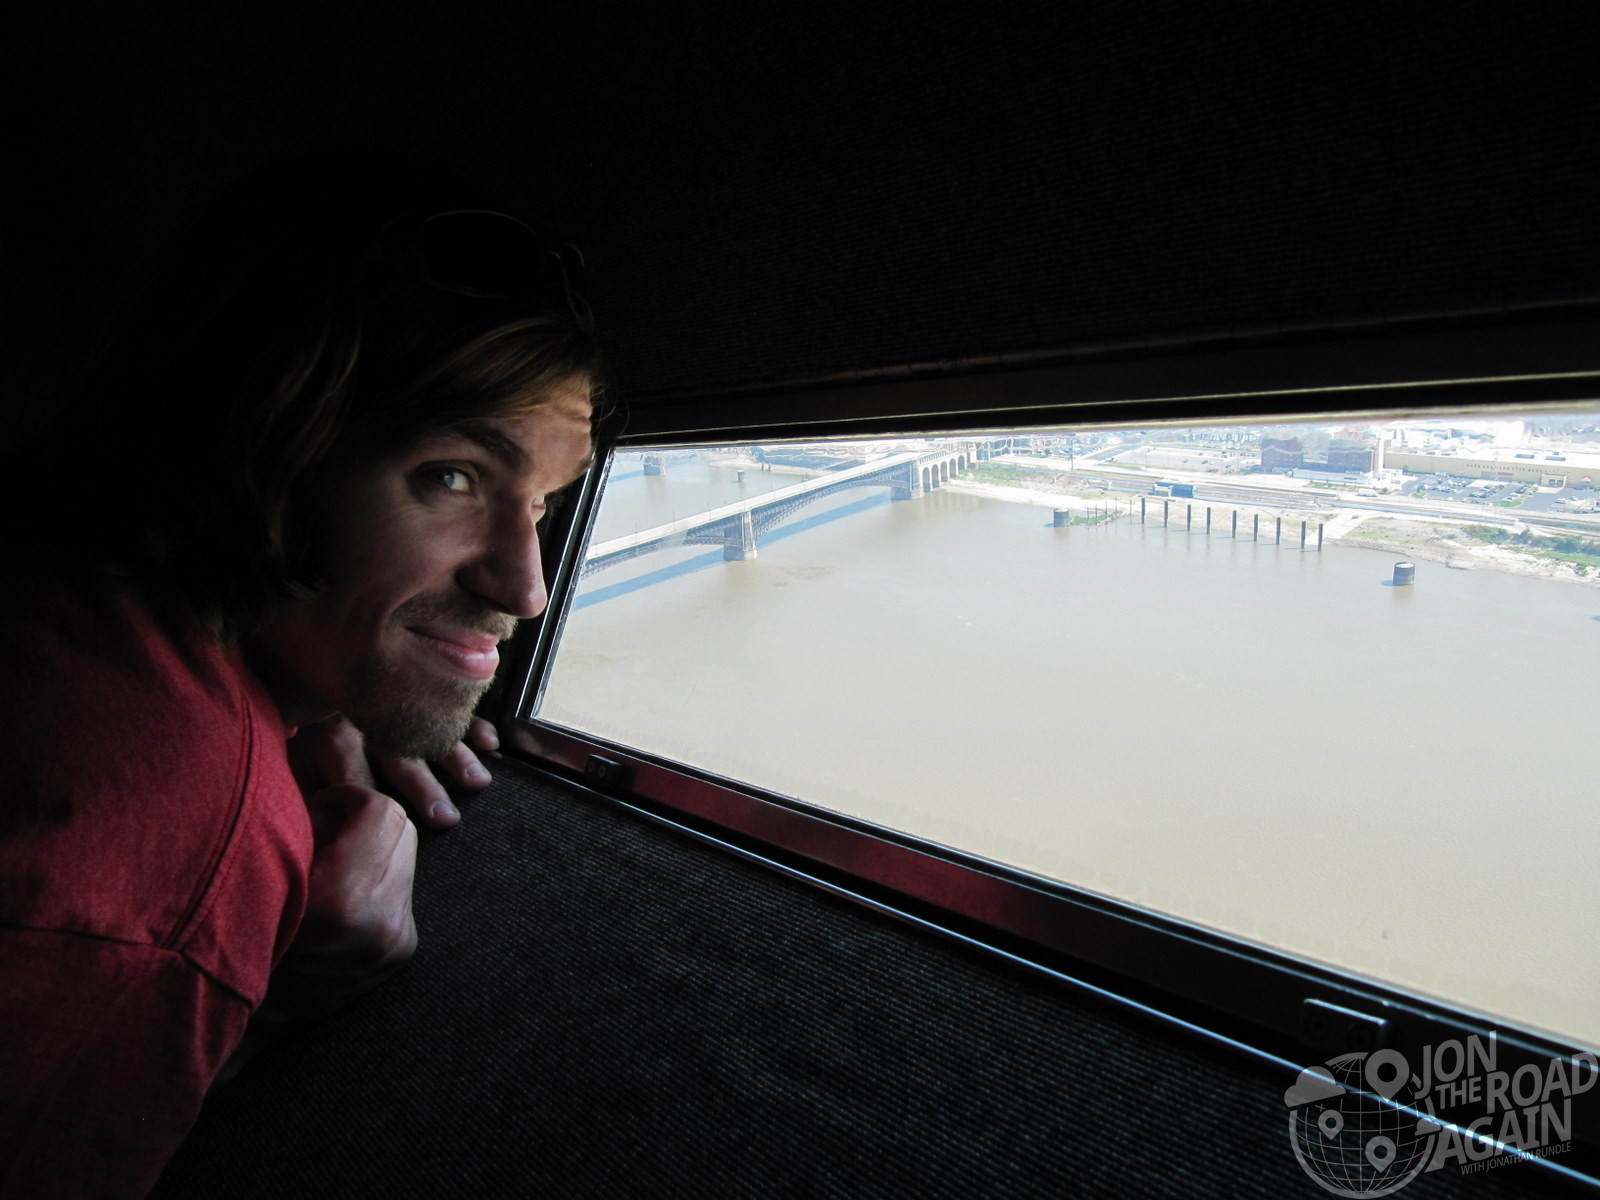 Looking out the st louis arch window